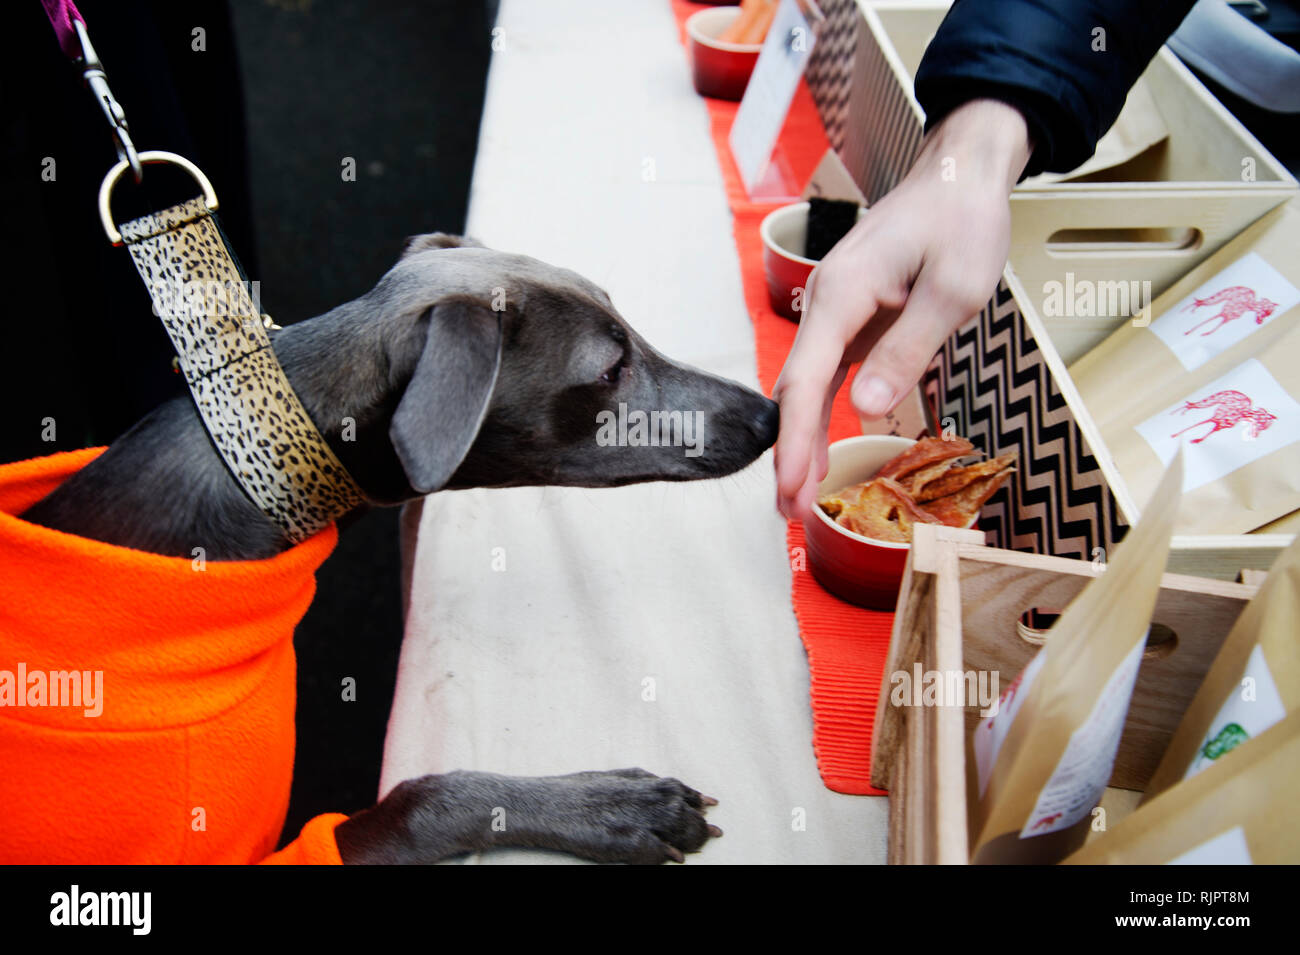 London. Hackney. Netil market. A dog wearing an orange jumper and a leopard prnt collar is very interested in doggy treats on sale. - Stock Image